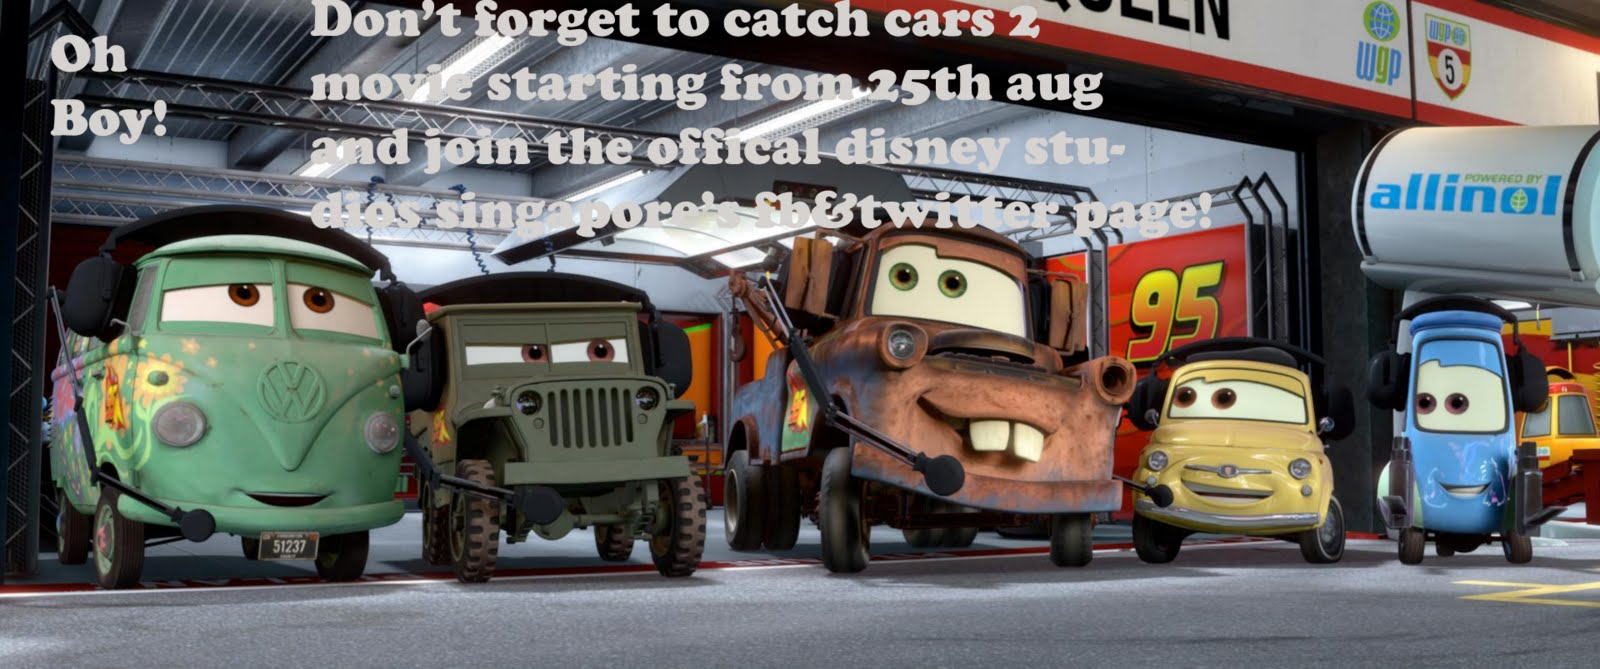 Mater Said: U0027Donu0027t Forget To Catch Cars 2 Movie Starting From 25th Aug And  Join The Offical Disney Studis SG FBu0026Twitter.u0027